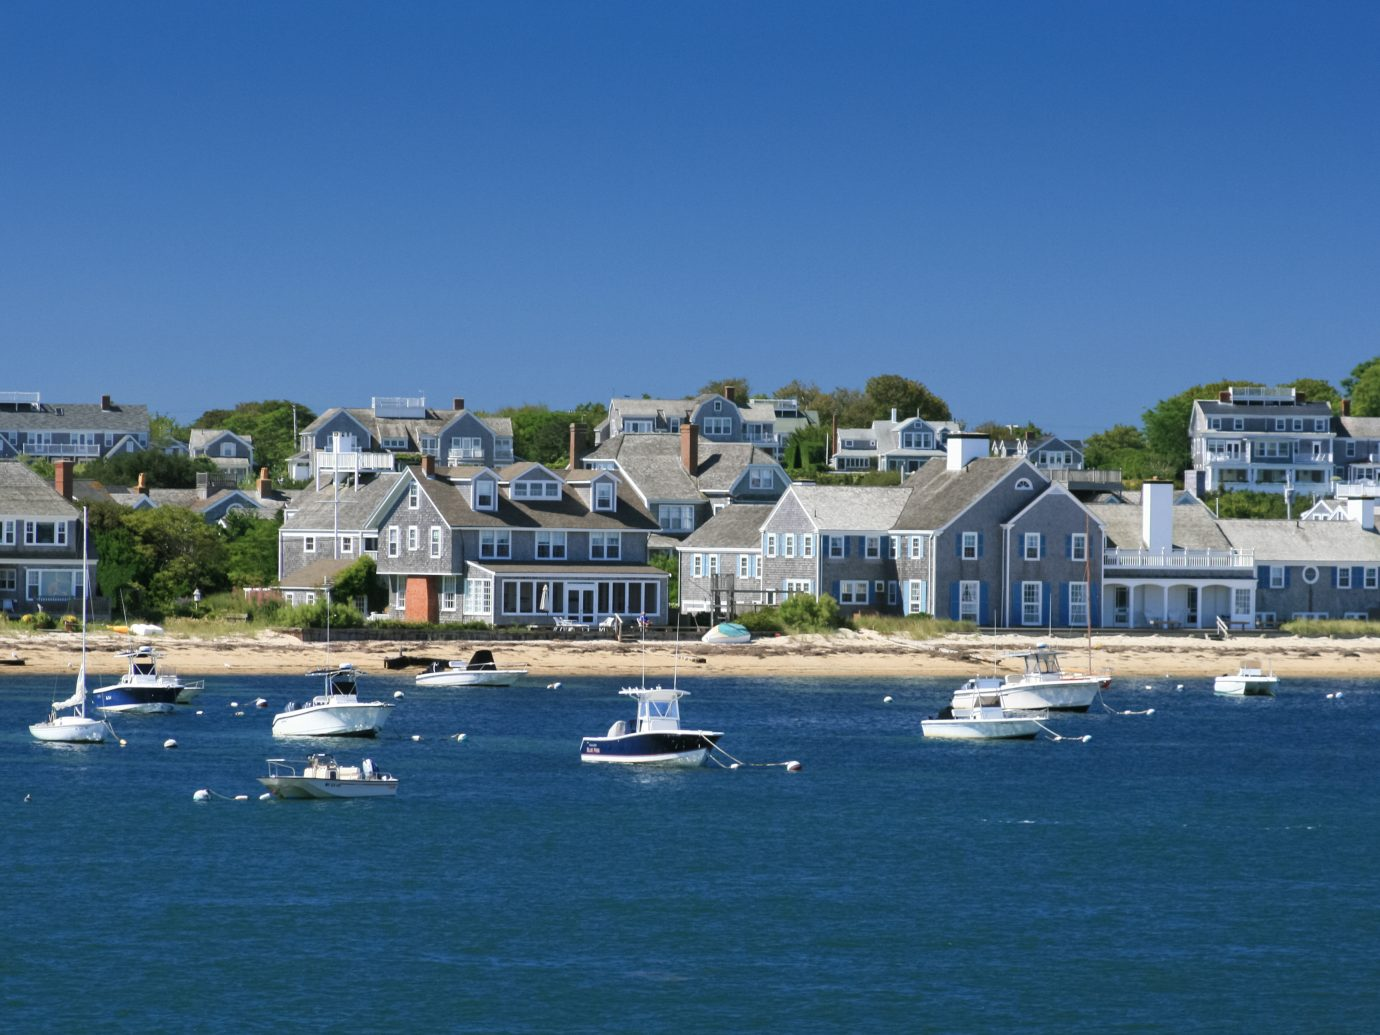 Boats and waterfront Houses, Nantucket, Massachusetts